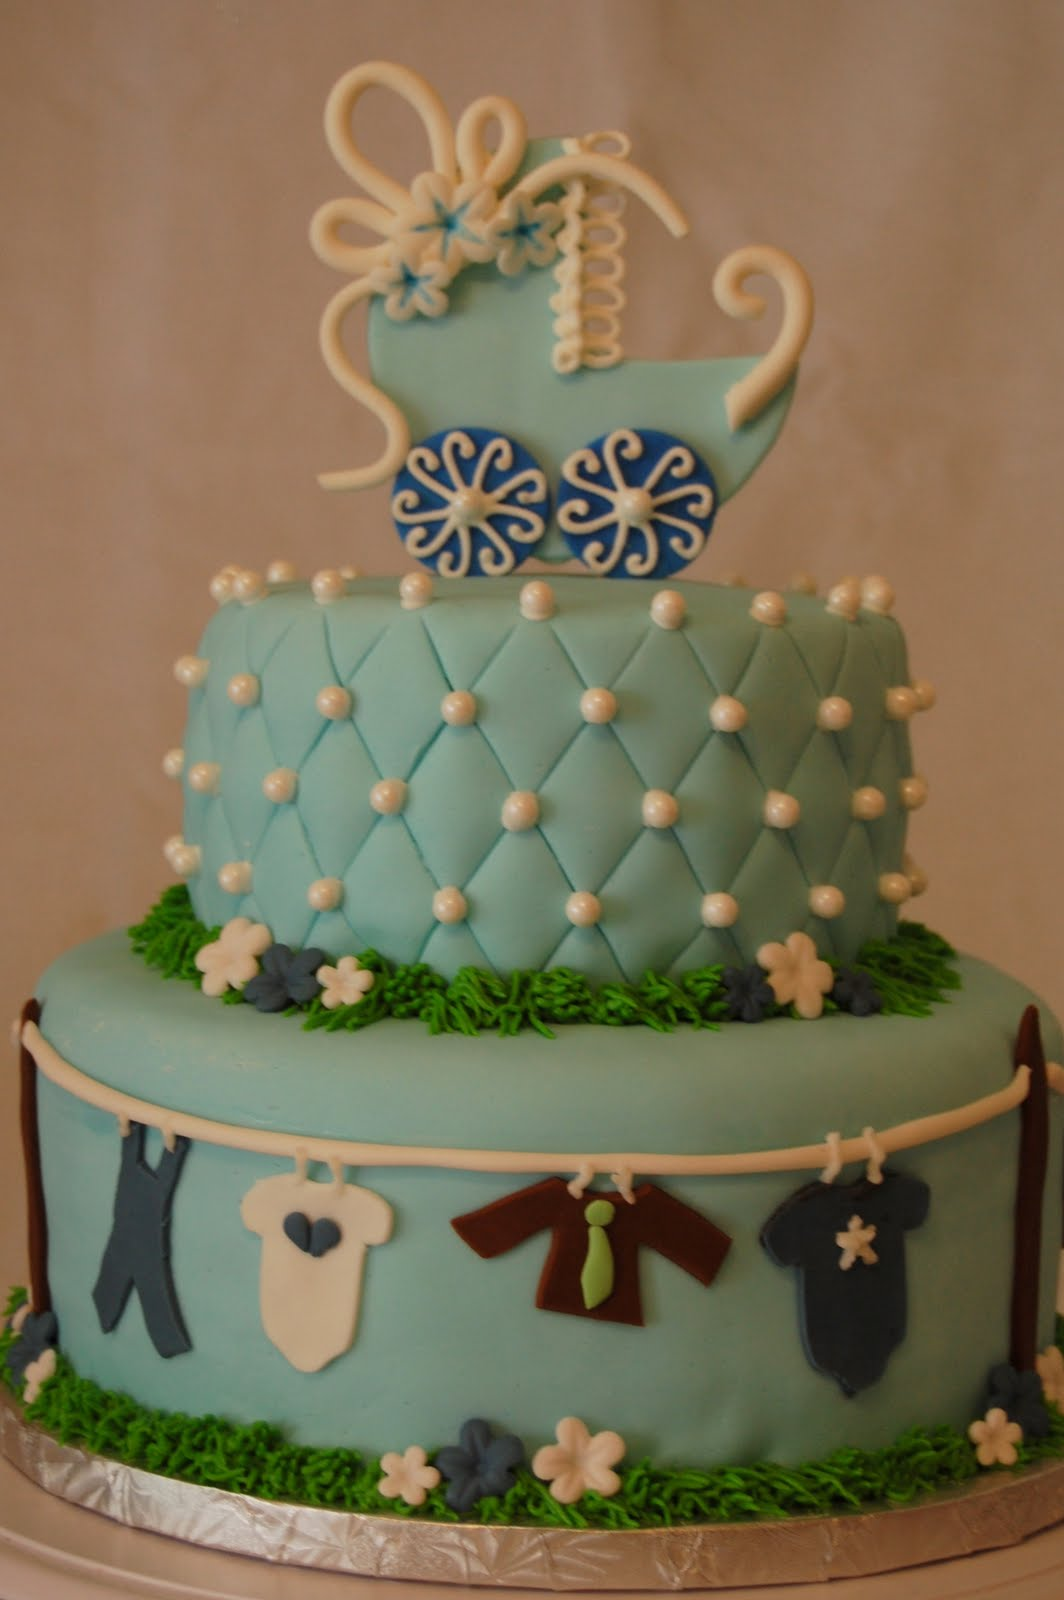 Cakefilley Clothes Line Baby Shower Cake